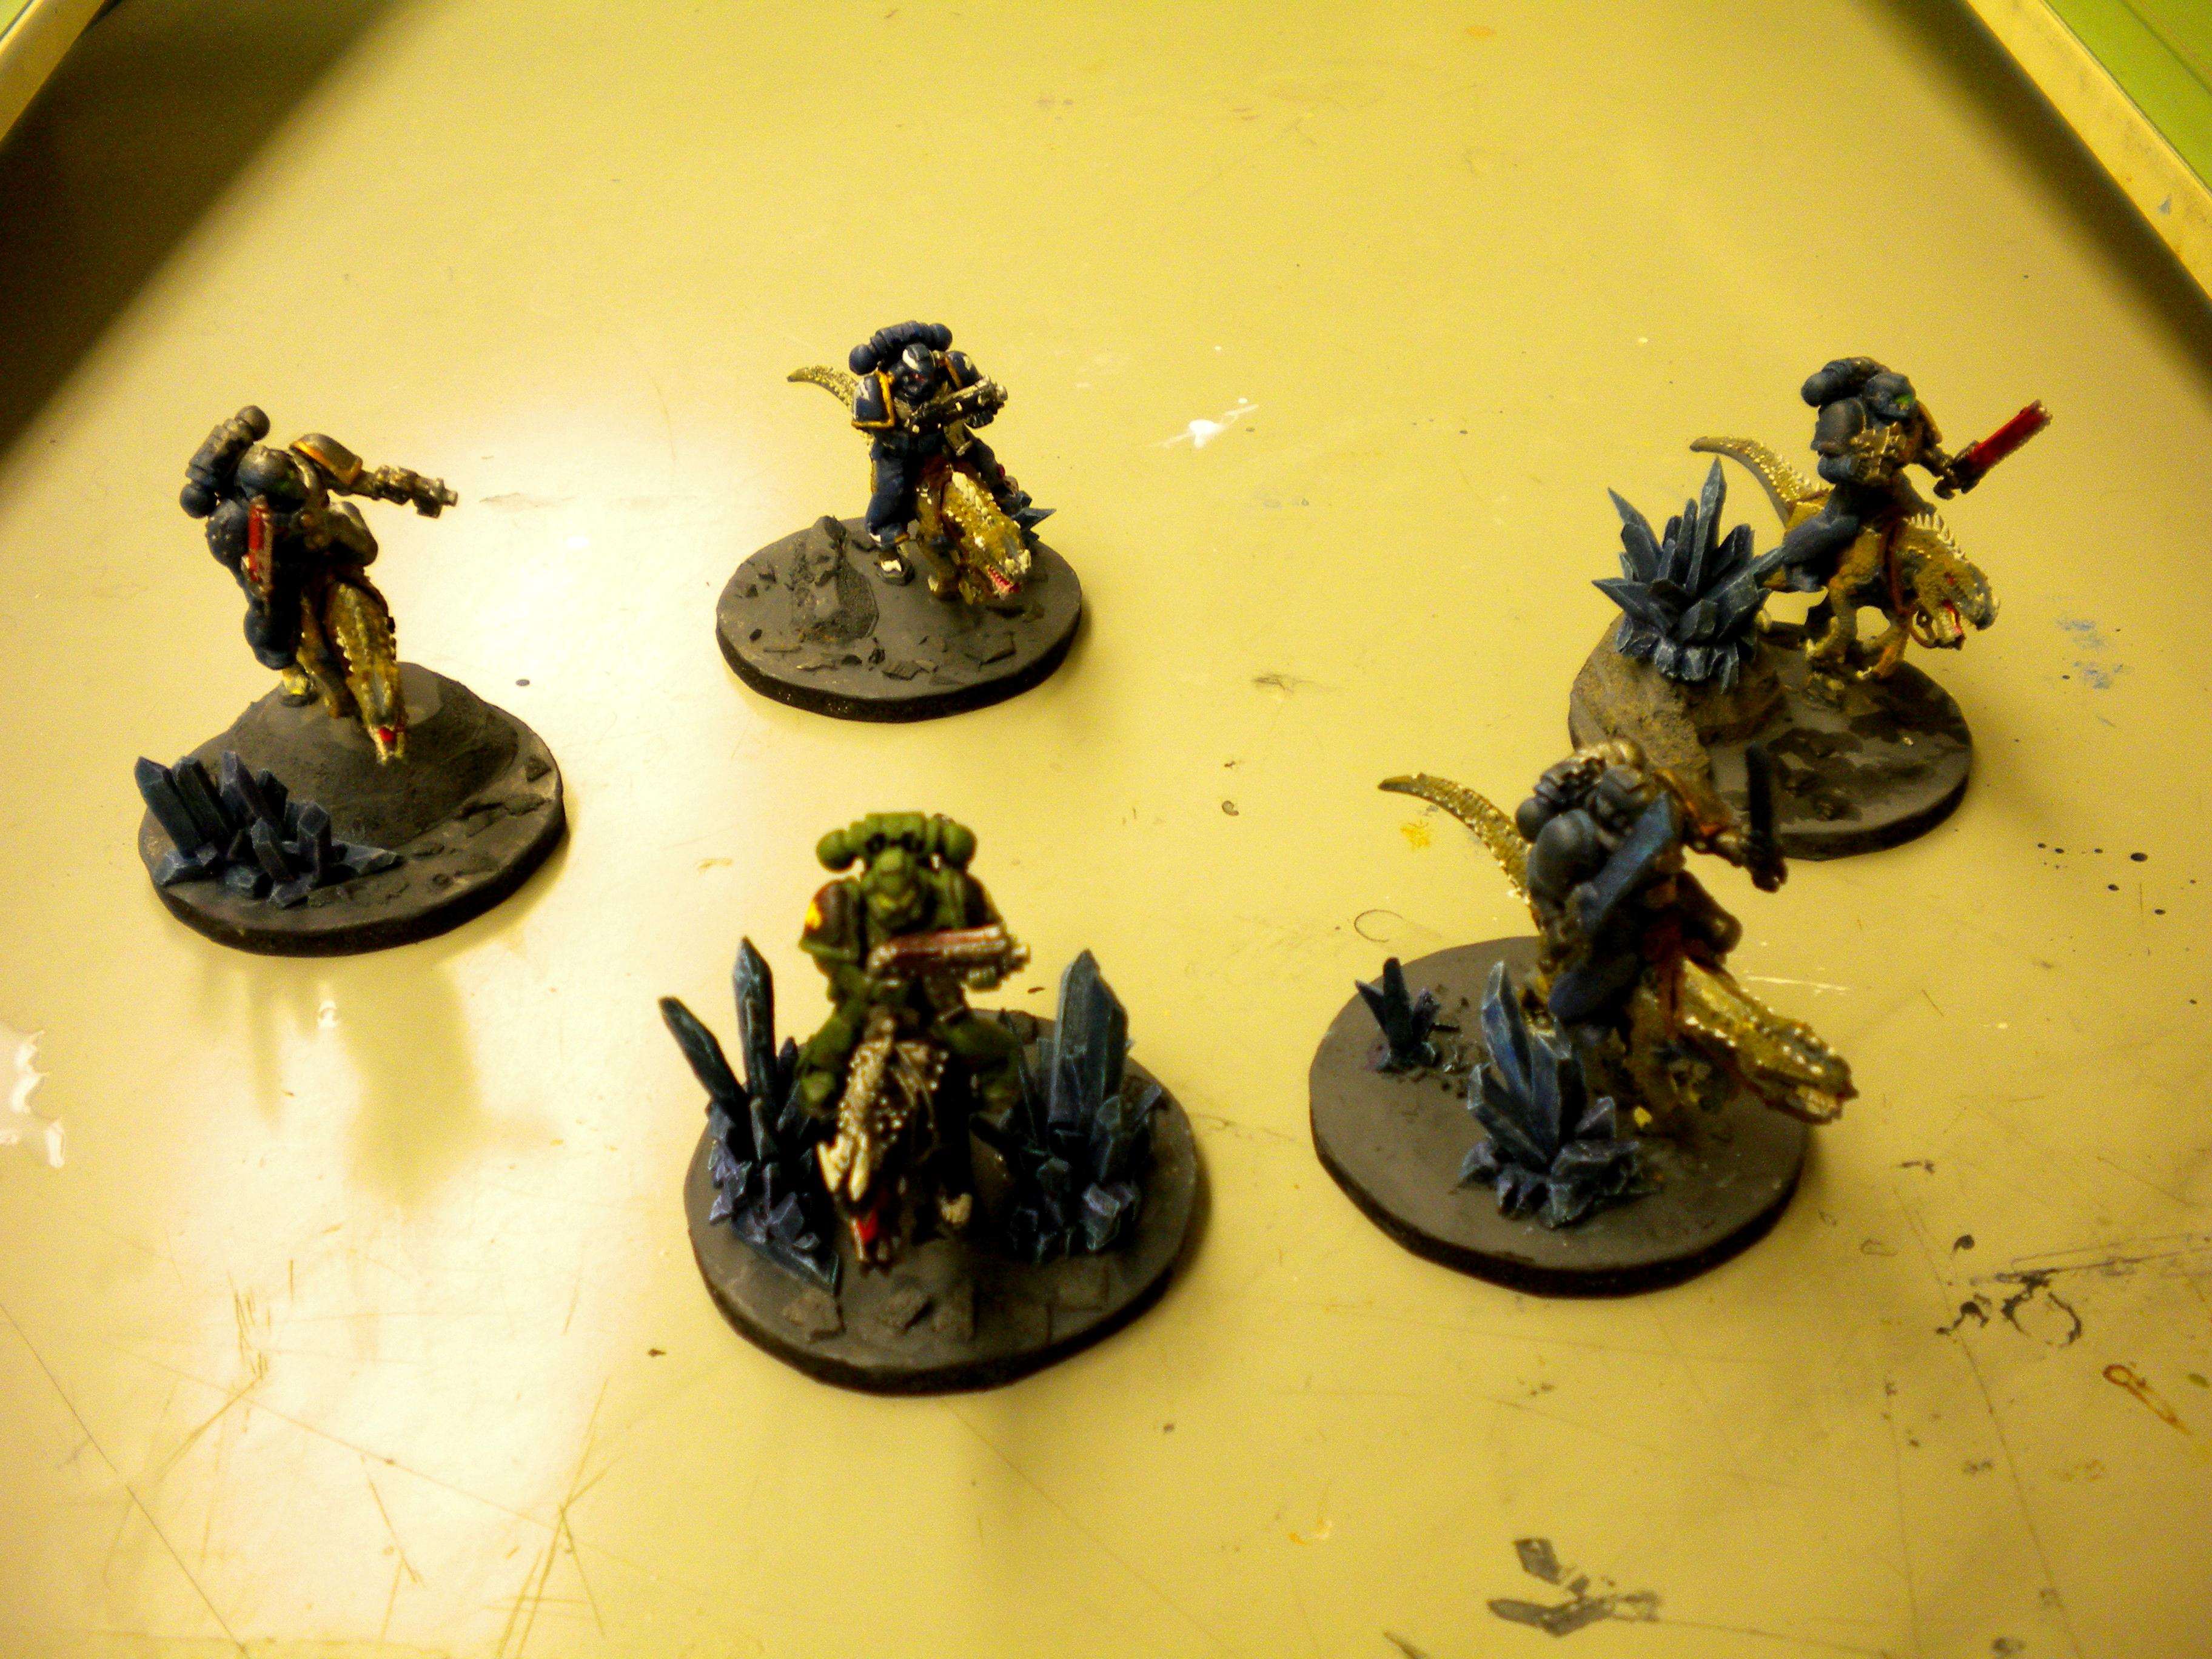 60mm, Calvary, Cold One, Conversion, Crystals, Custom Base, Raptors, Razorlizard, Space Marines, Thunder Lords, Thunderwolf